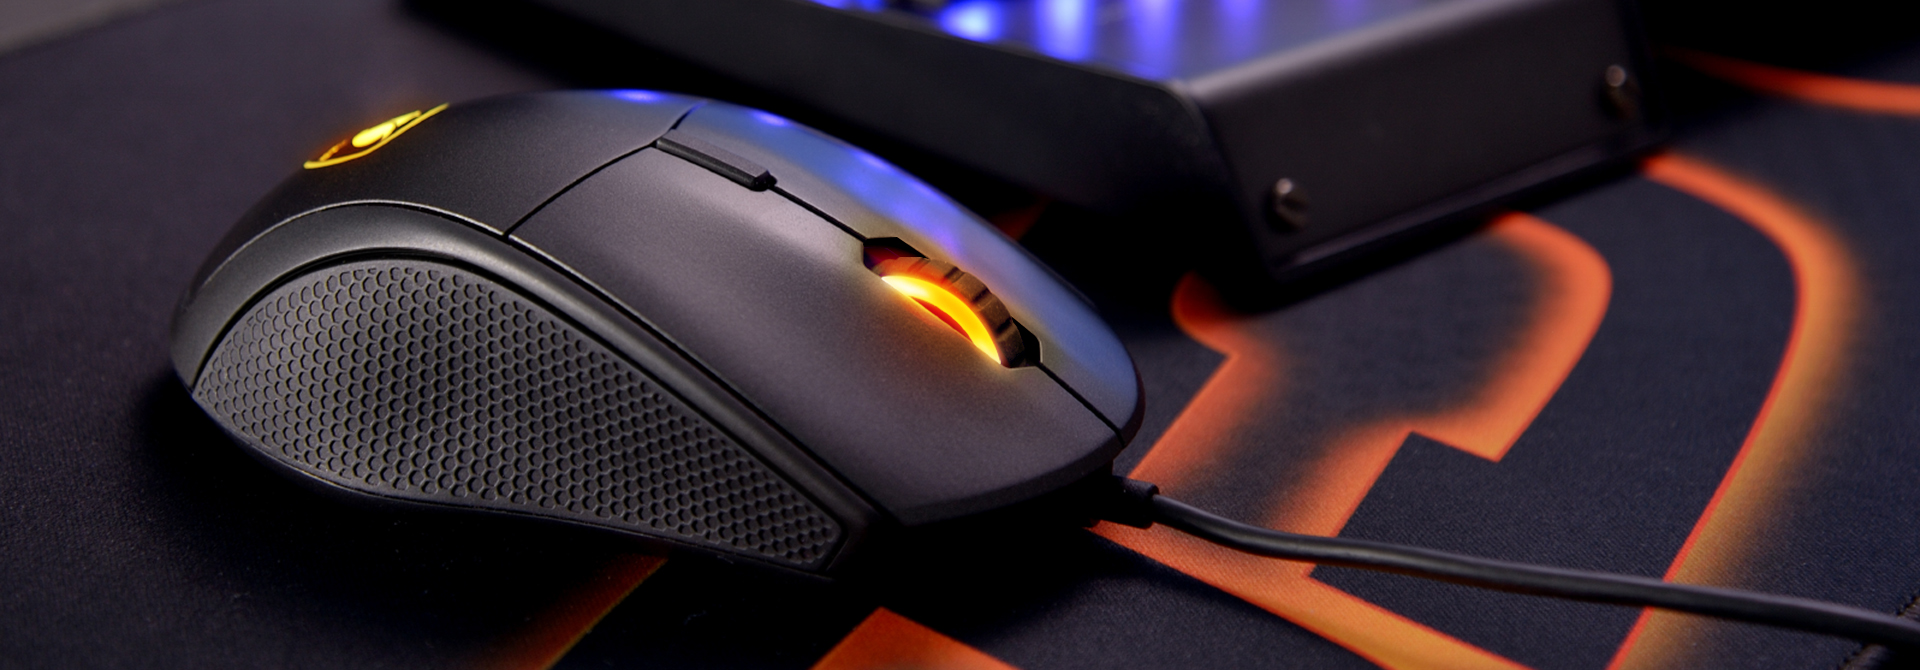 COUGAR Minos X5 - Optical Gaming Mouse